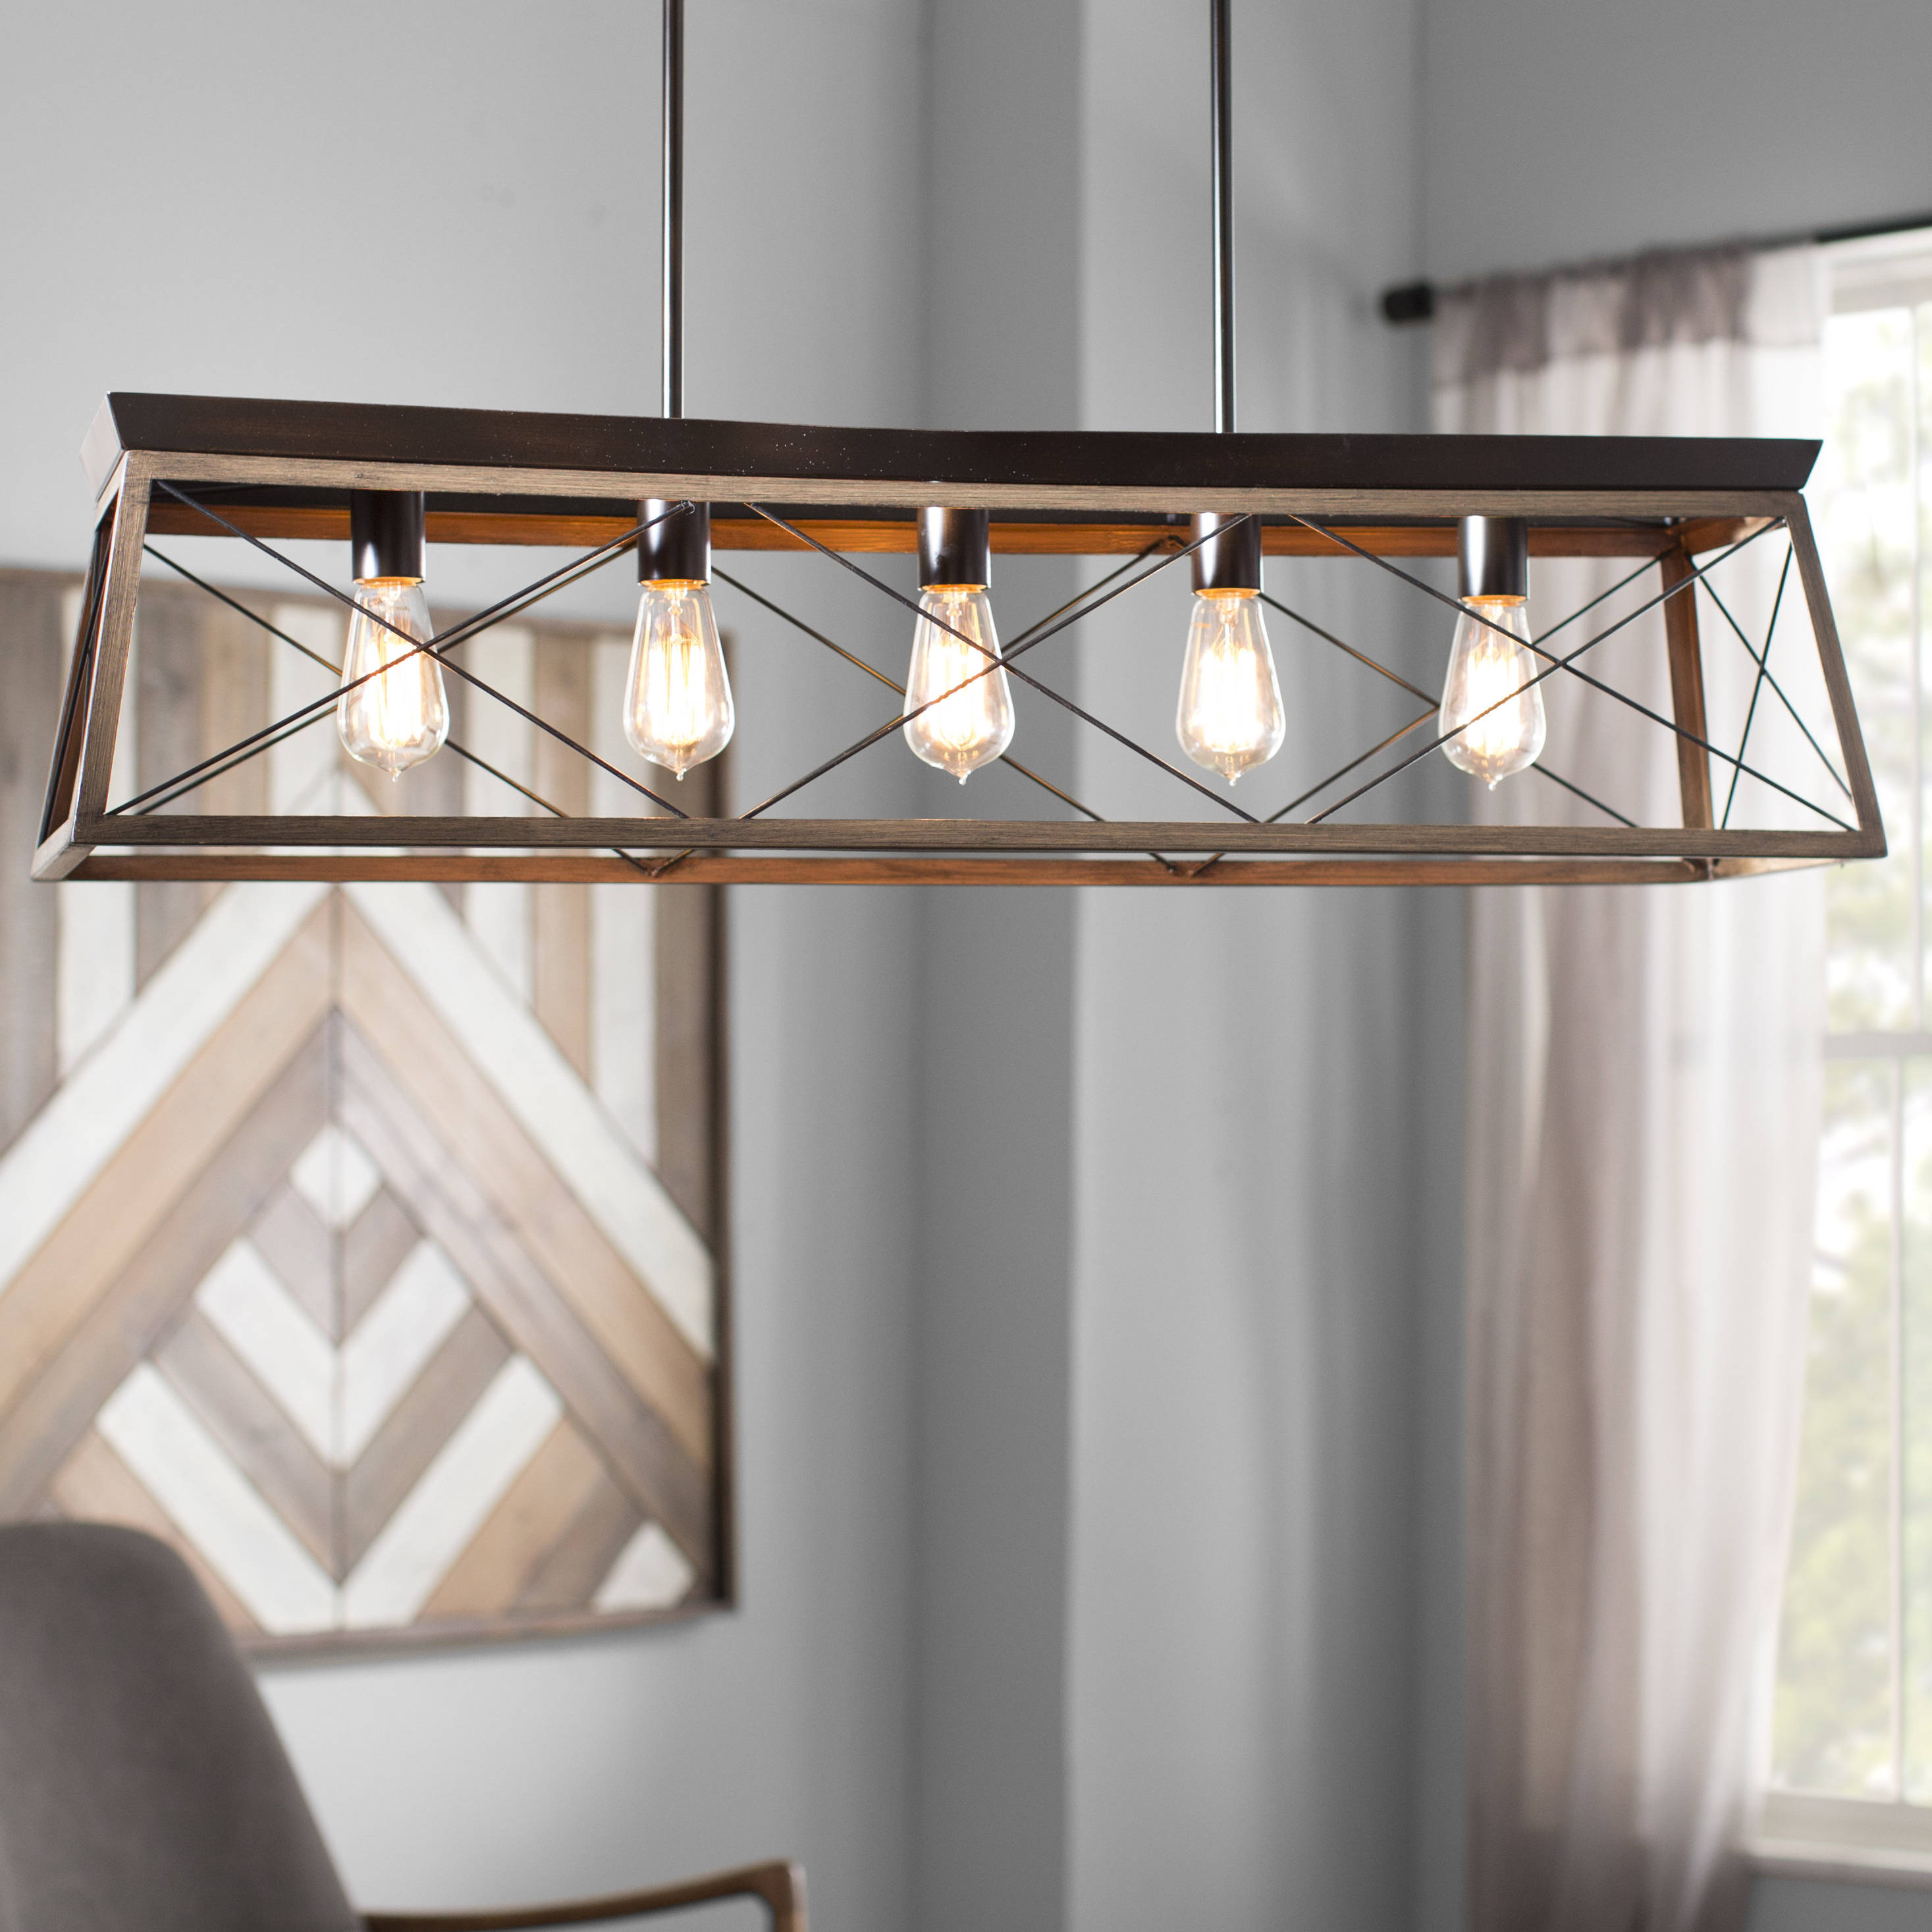 Laurel Foundry Modern Farmhouse Delon 5 Light Kitchen Island With Favorite Thorne 5 Light Kitchen Island Pendants (View 8 of 20)